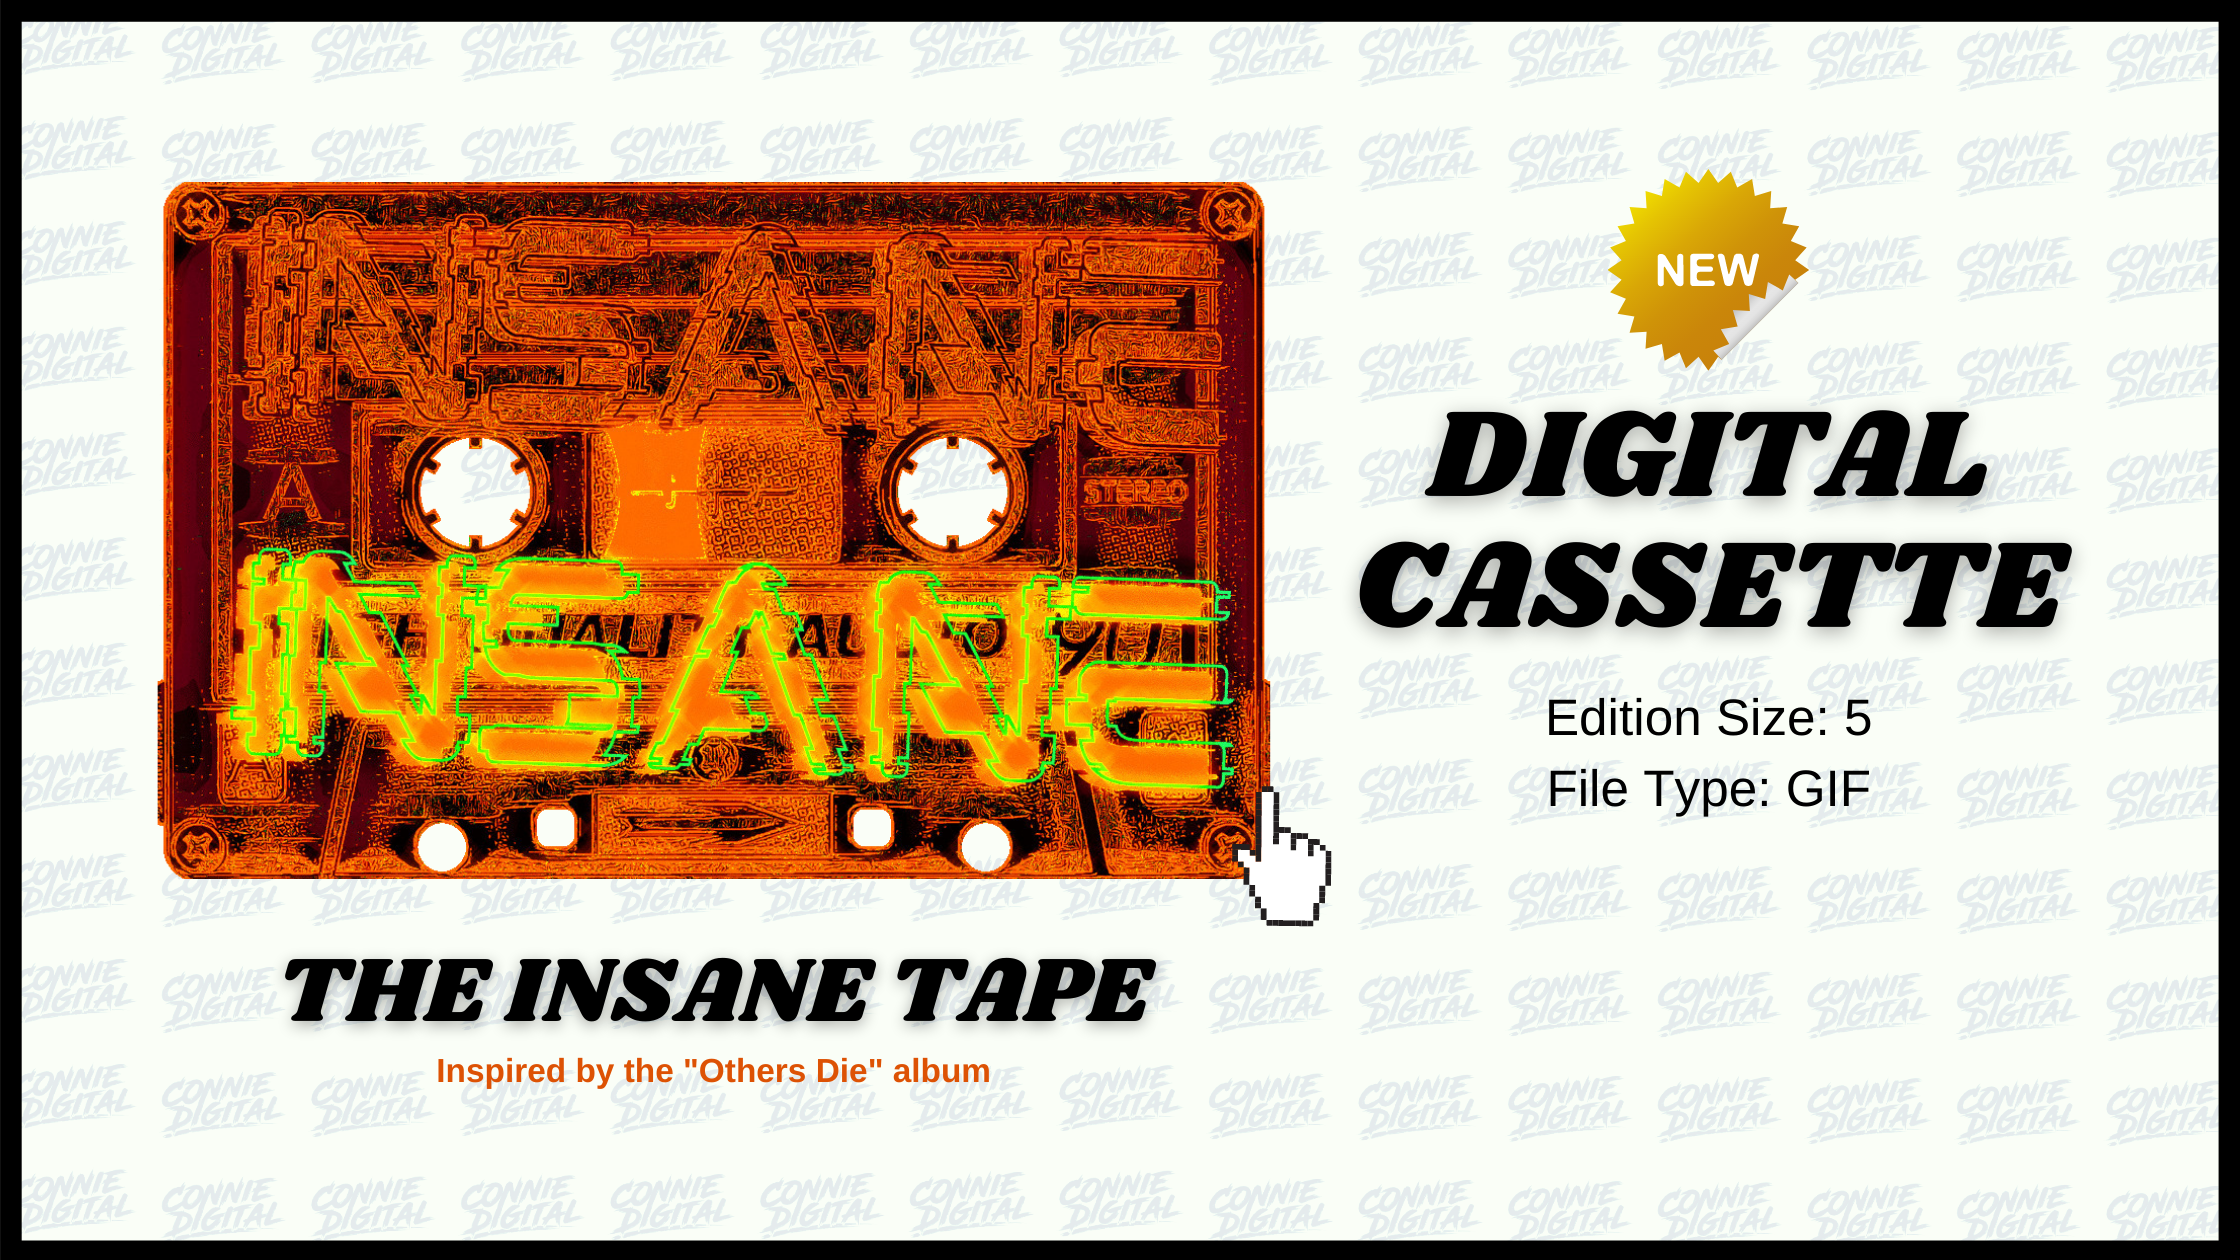 Insane Tape Connie Digital Mighty33 Others Die Blockchain album NFT Music